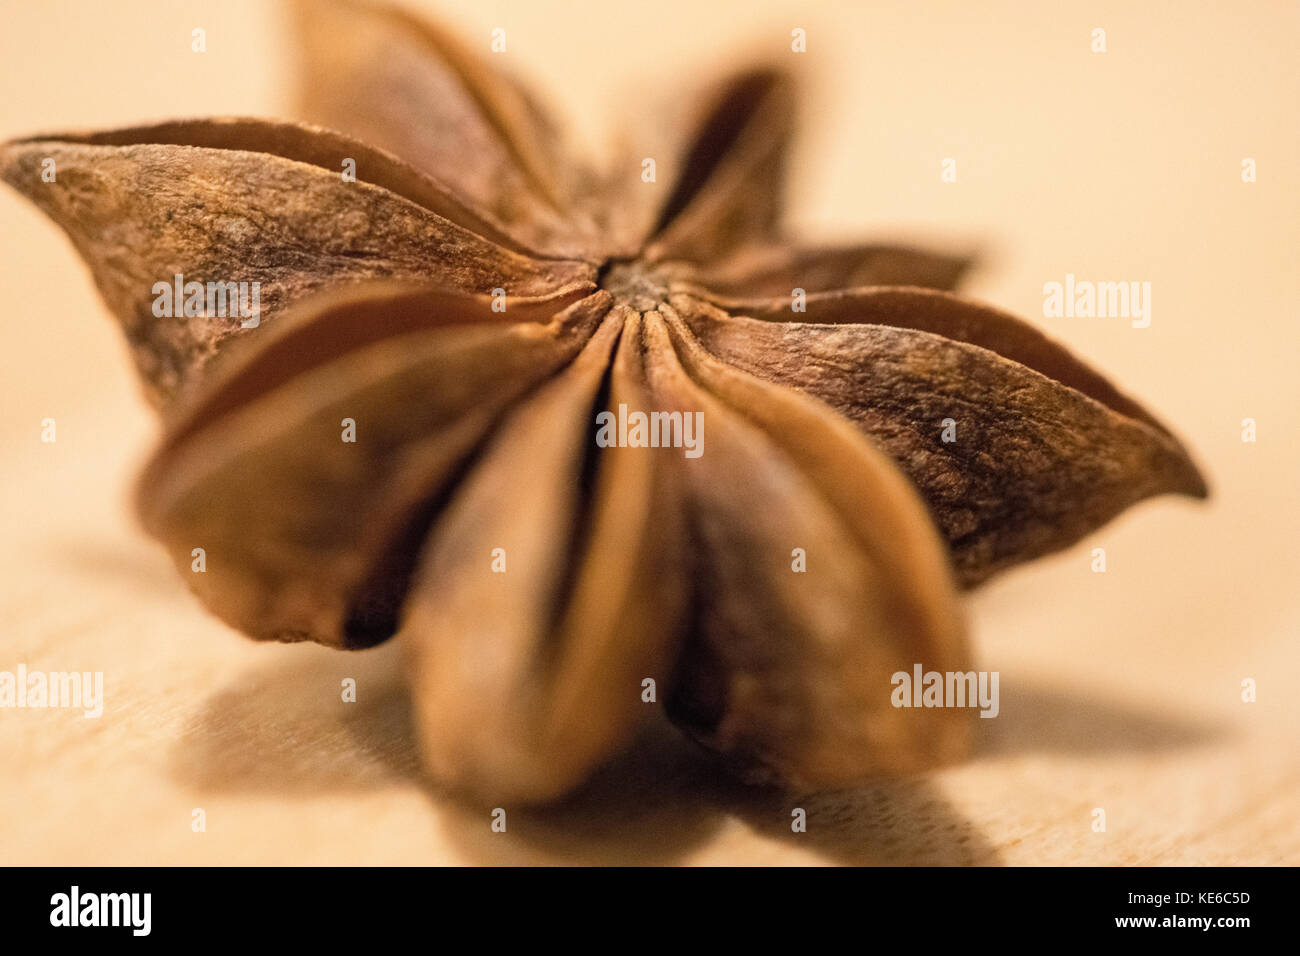 Star Anise - Stock Image